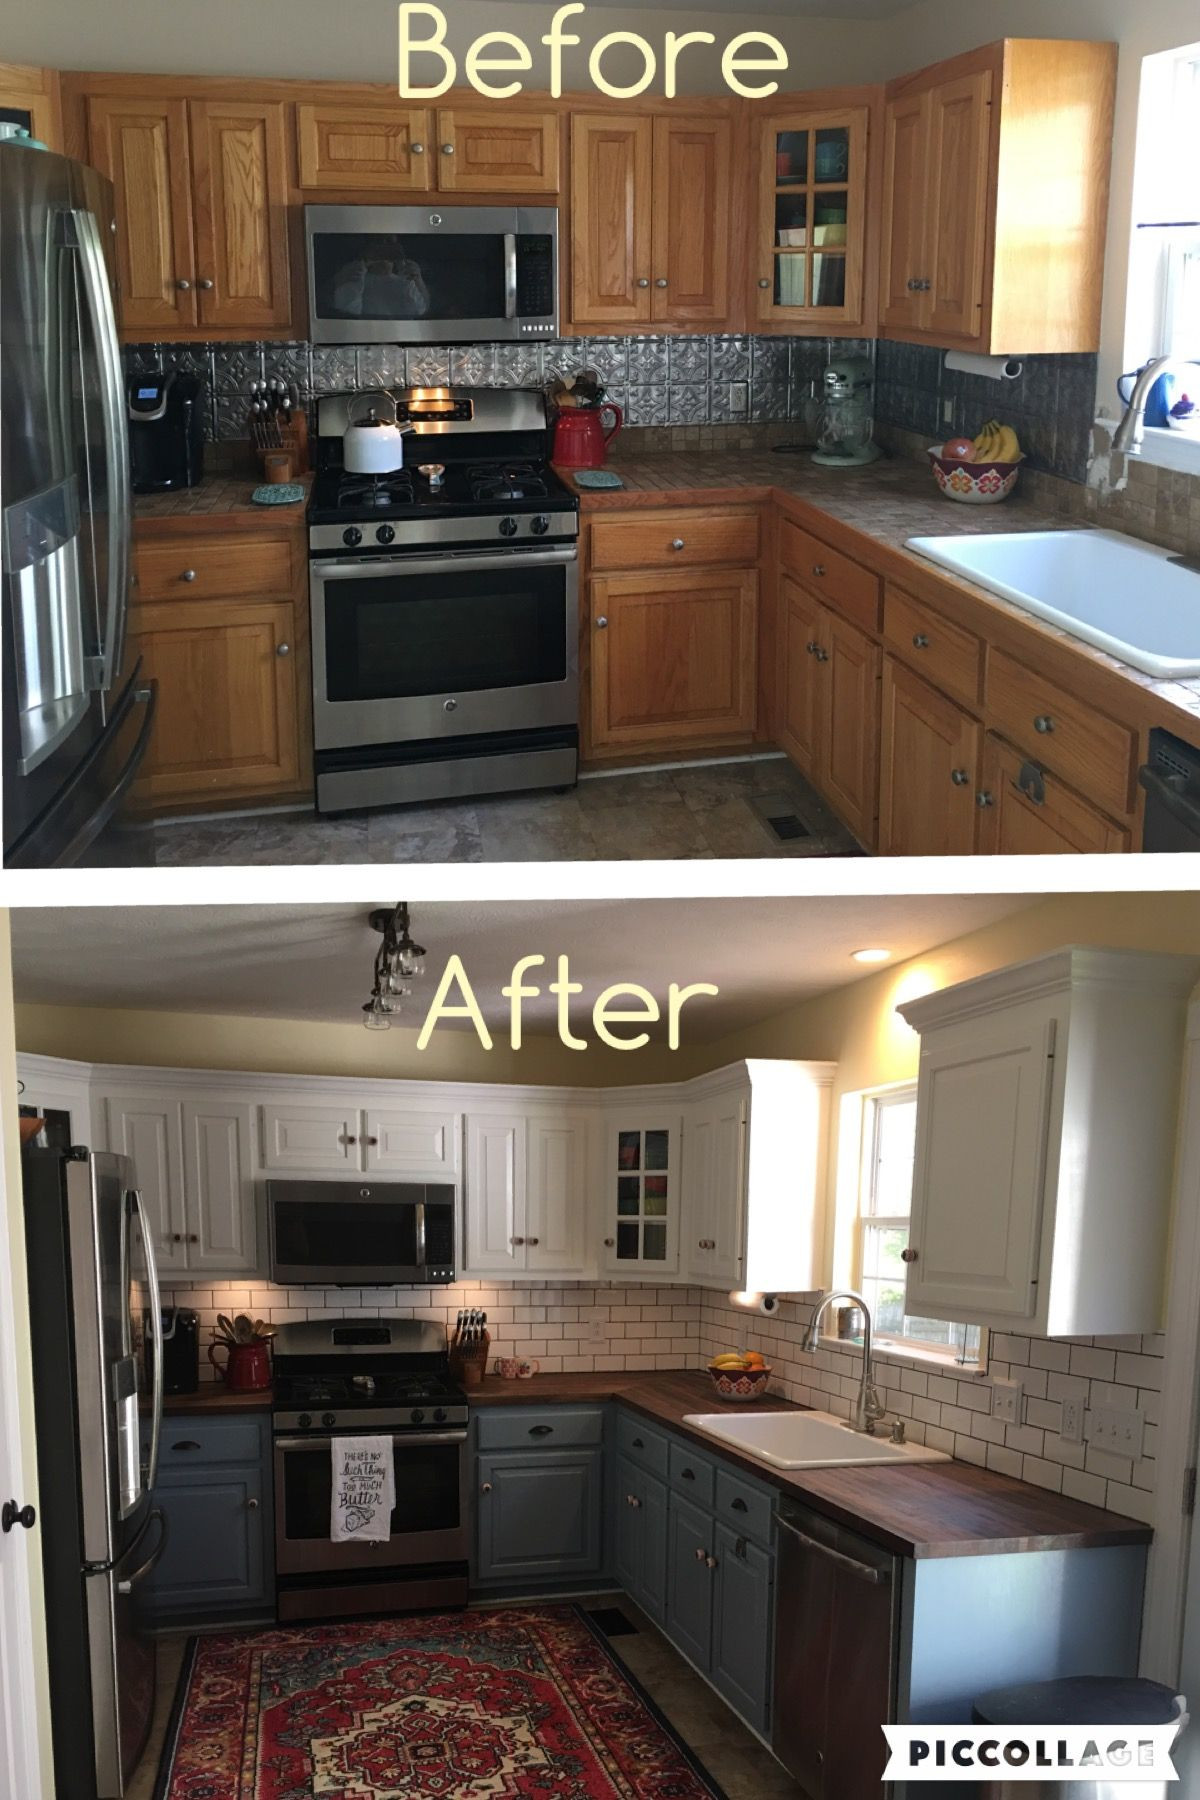 hardwood floor refinishing naperville il of two toned cabinets valspar cabinet enamel from lowes successful in two toned cabinets valspar cabinet enamel from lowes successful kitchen updating best cabinet paint by far